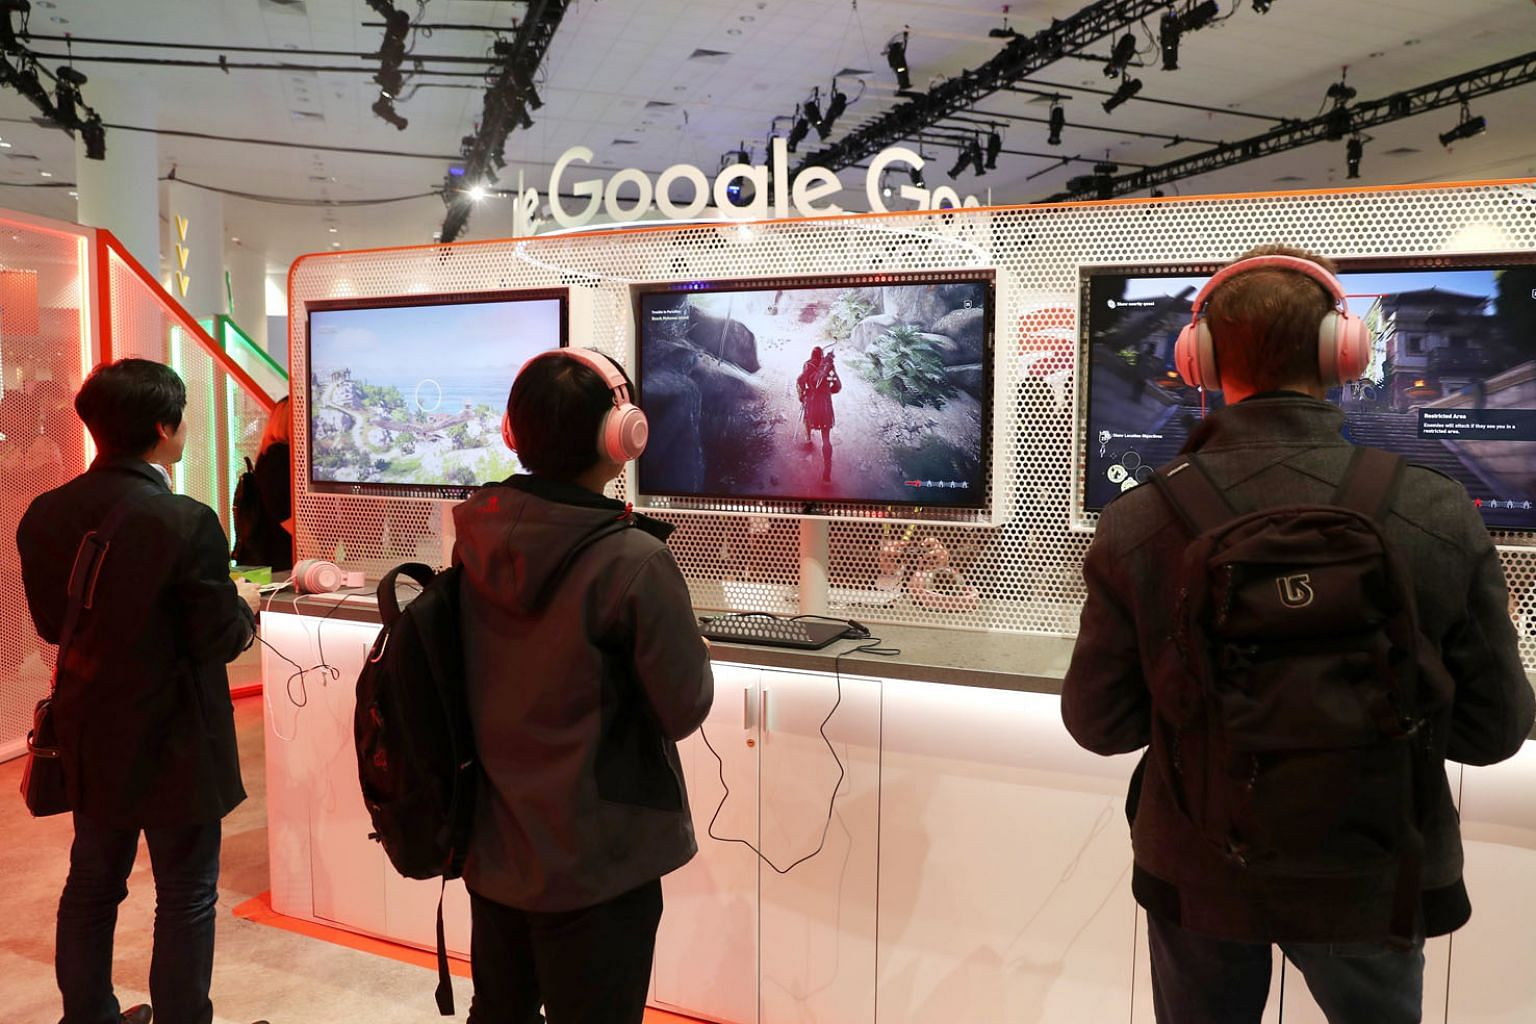 Attendees at the 2019 Game Developers Conference last month playing games at the Google booth in San Francisco, California. Google is, via the cloud, making a big bet on gaming - recalling China's gaming and investment tech conglomerate Tencent.